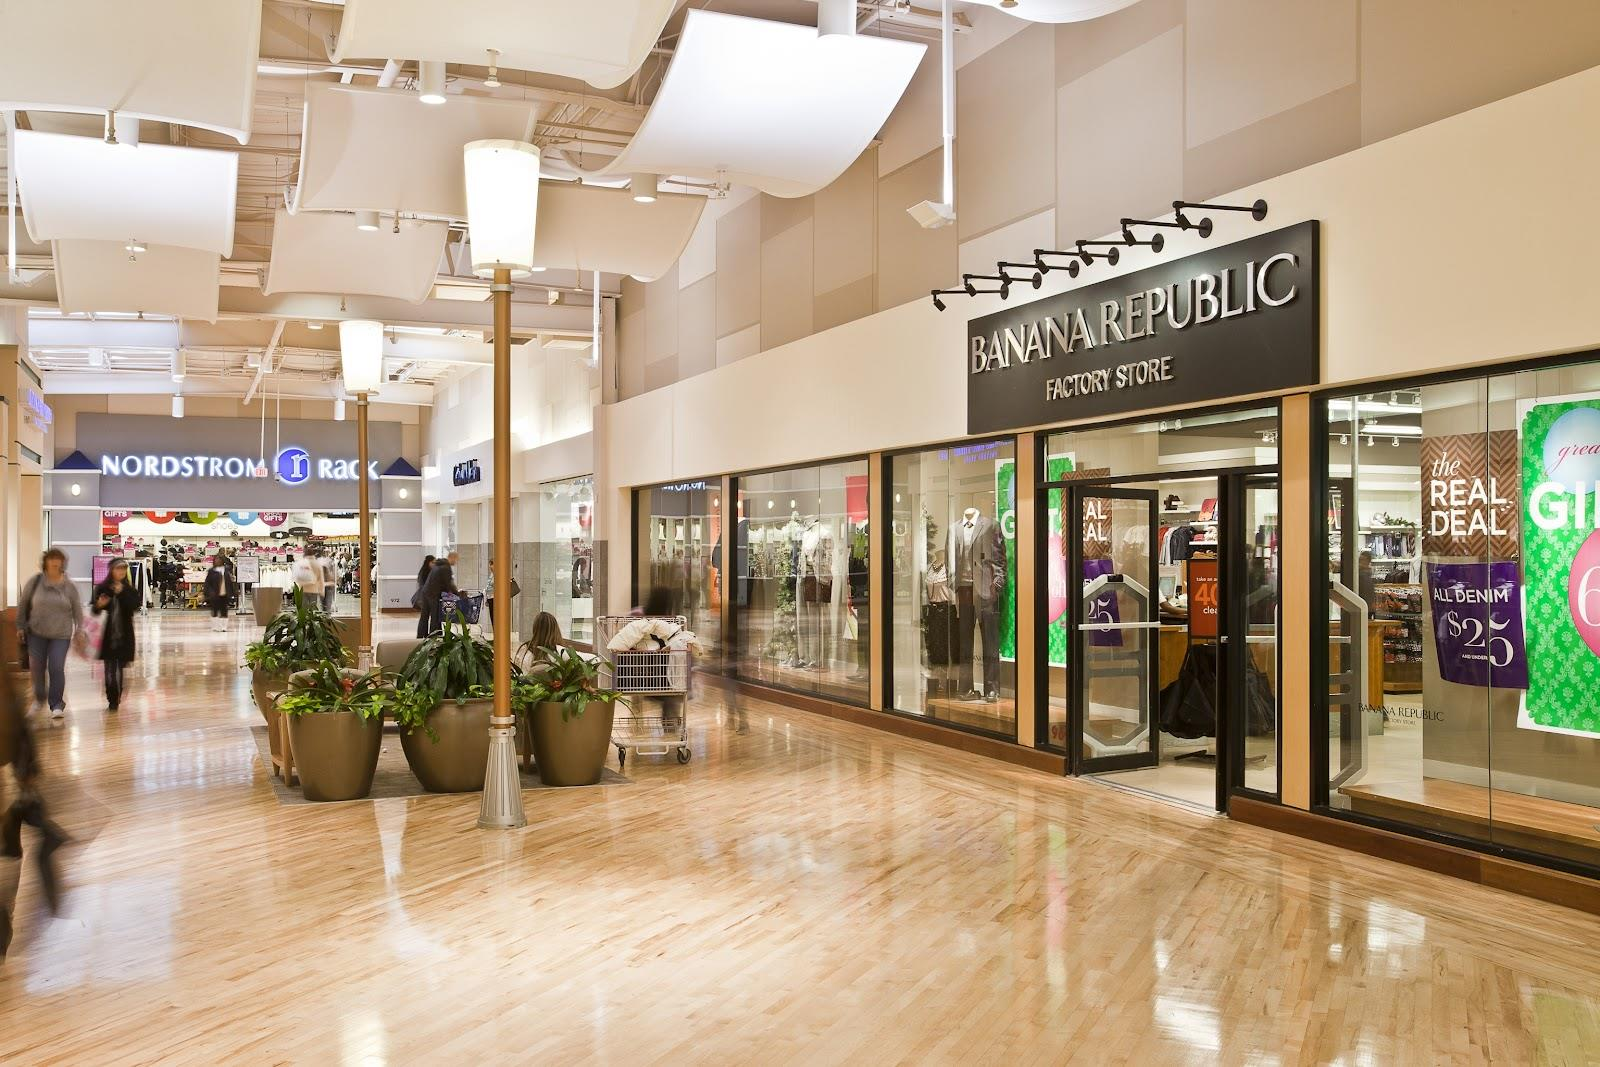 Department store for women, men and children. Shop your nearest Nordstrom store for apparel, shoes, jewelry, luggage.